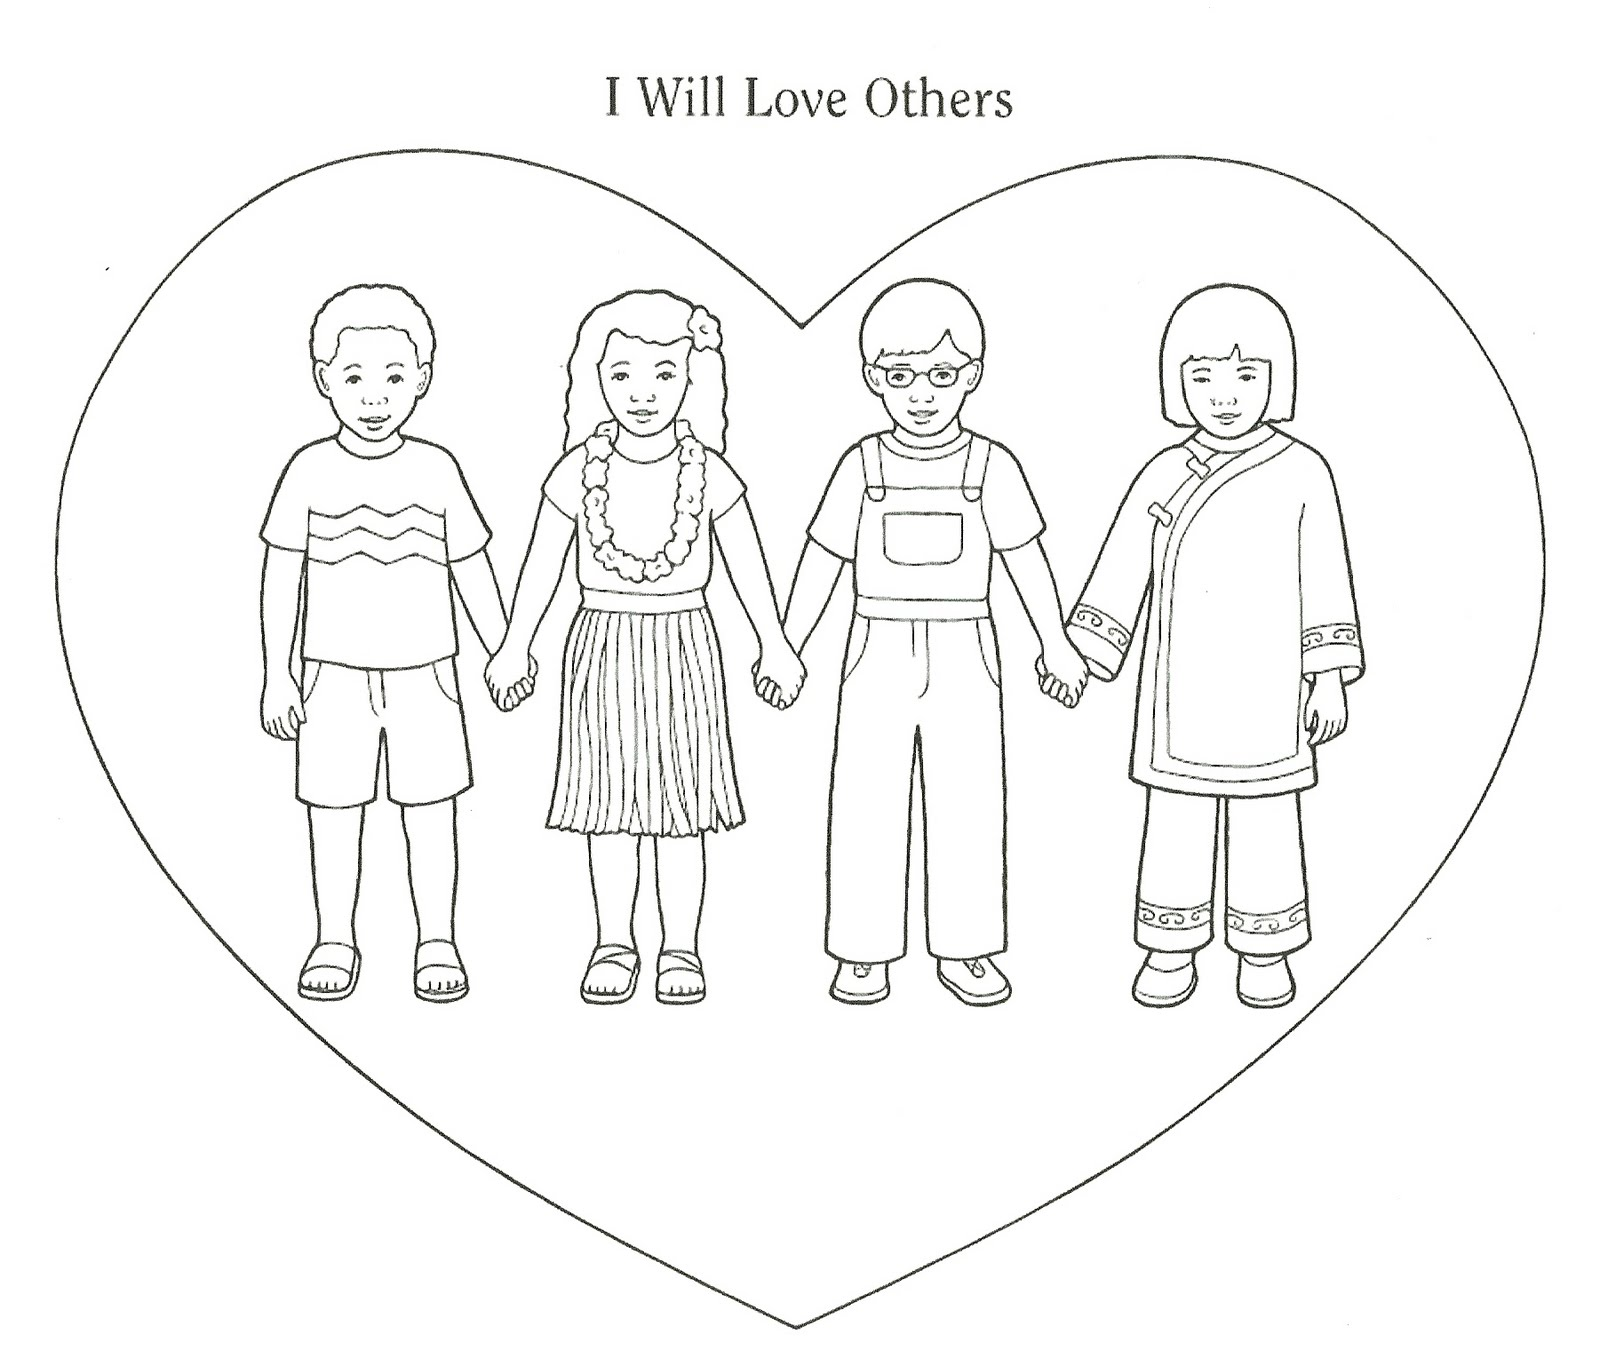 Emejing Love One Another Coloring Pages Contemporary Coloring